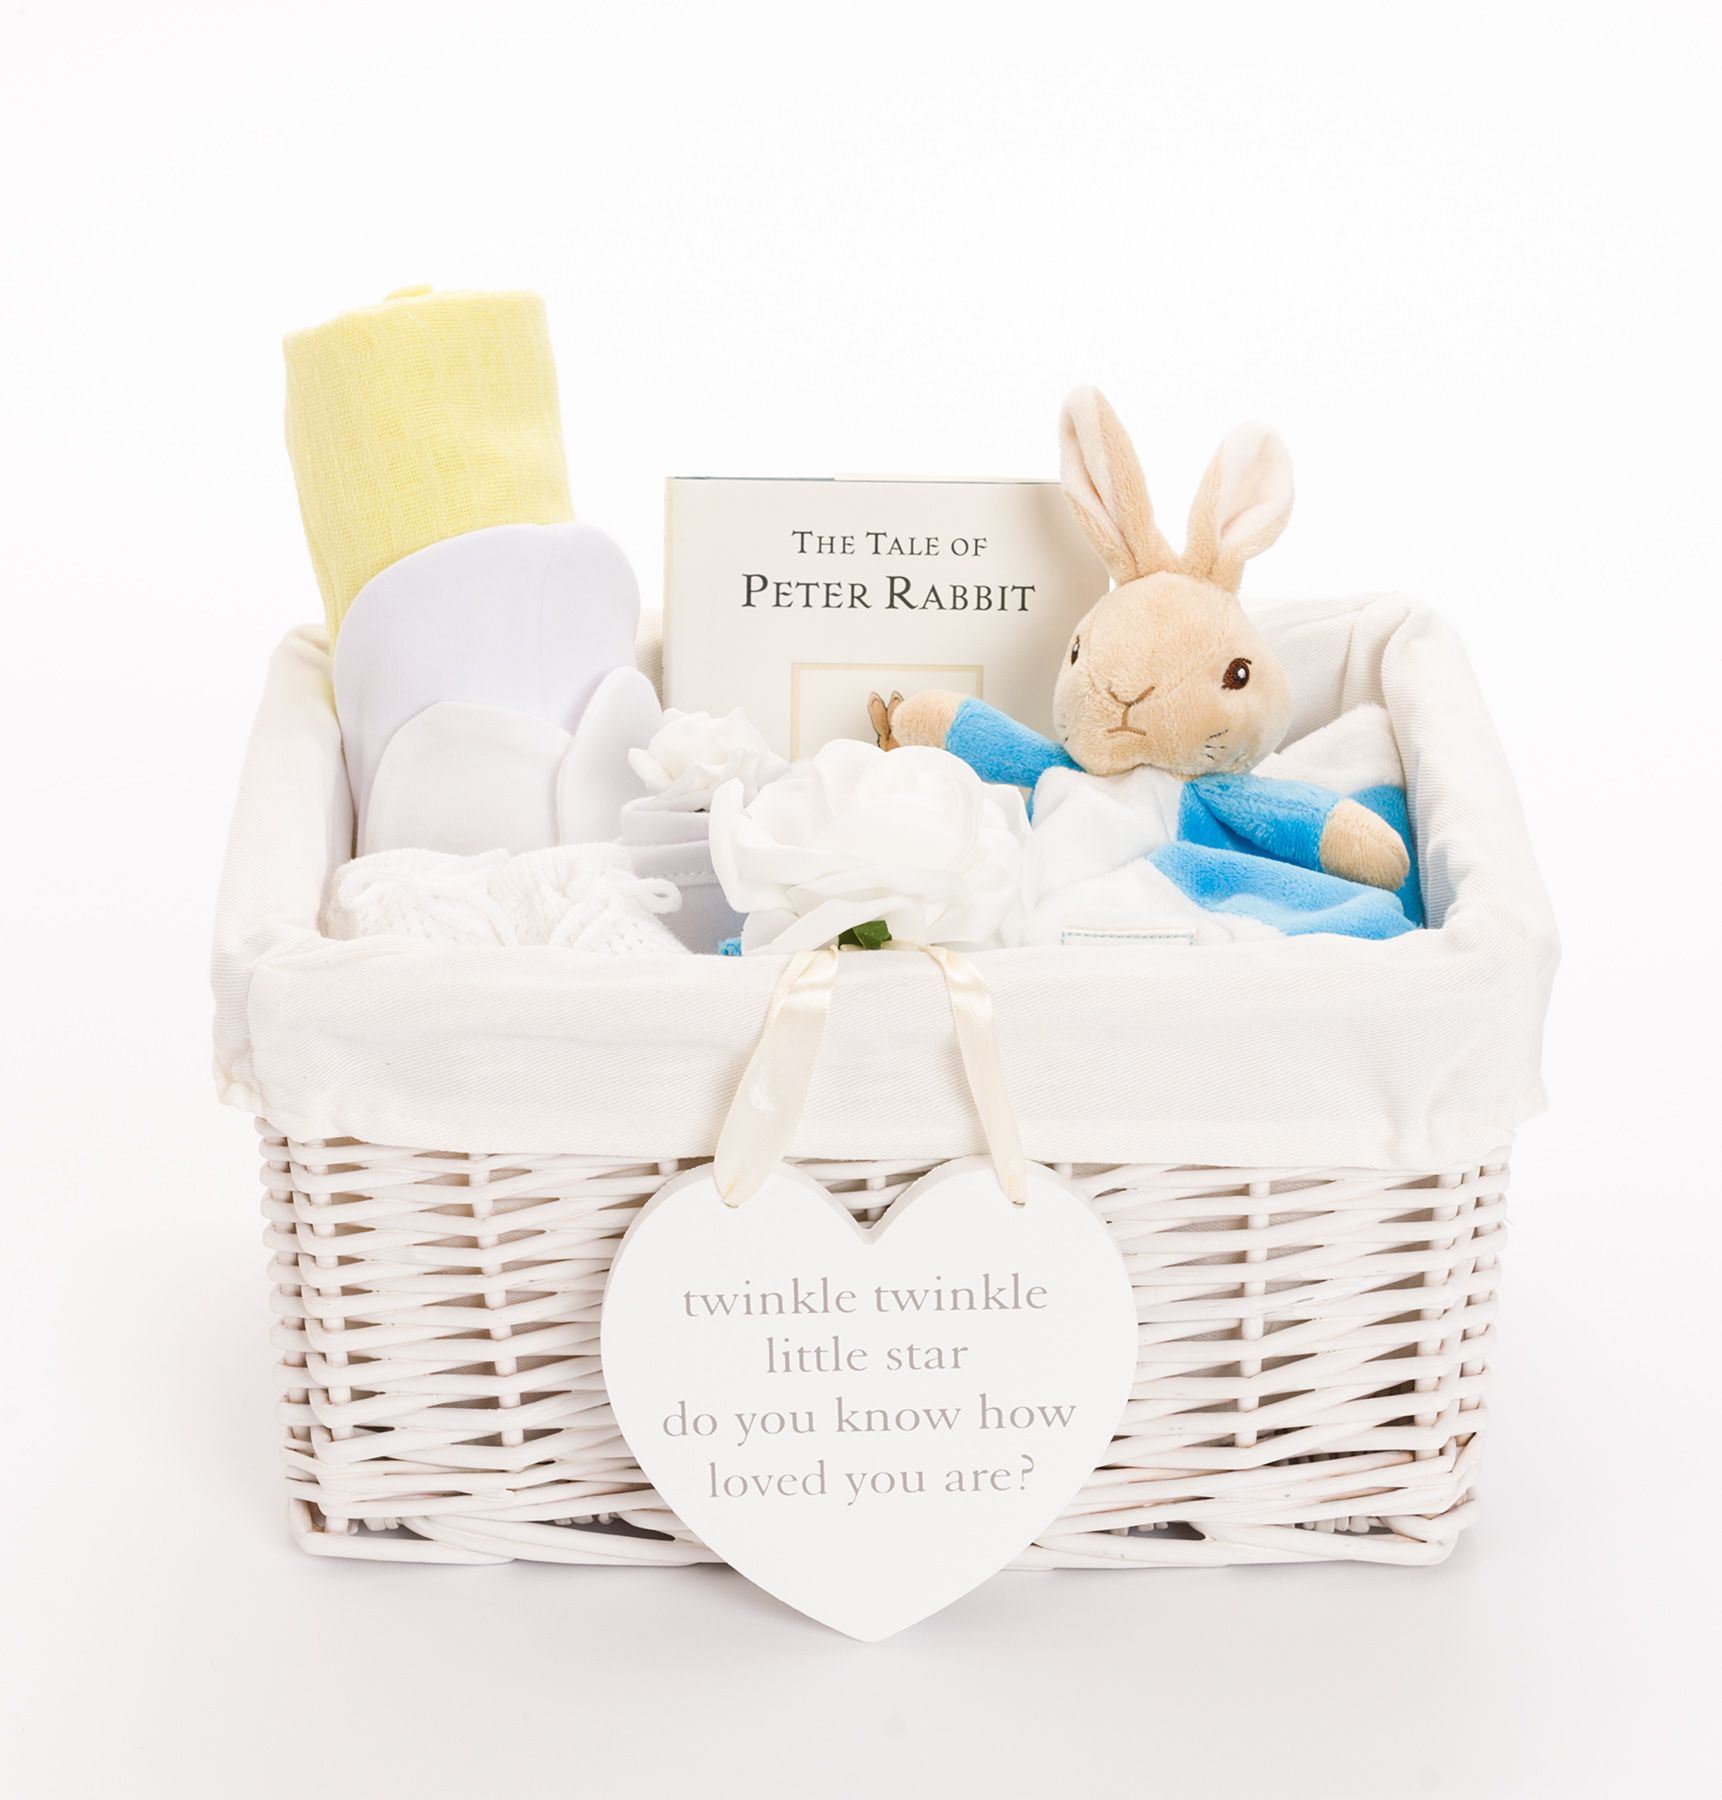 Unisex Baby Gifts Neutral Baby Hampers Peter Rabbit Baby Gifts Our Peter Rabbit Baby Hamper Makes A Perf Baby Hamper Unisex Baby Gifts Baby Shower Hamper